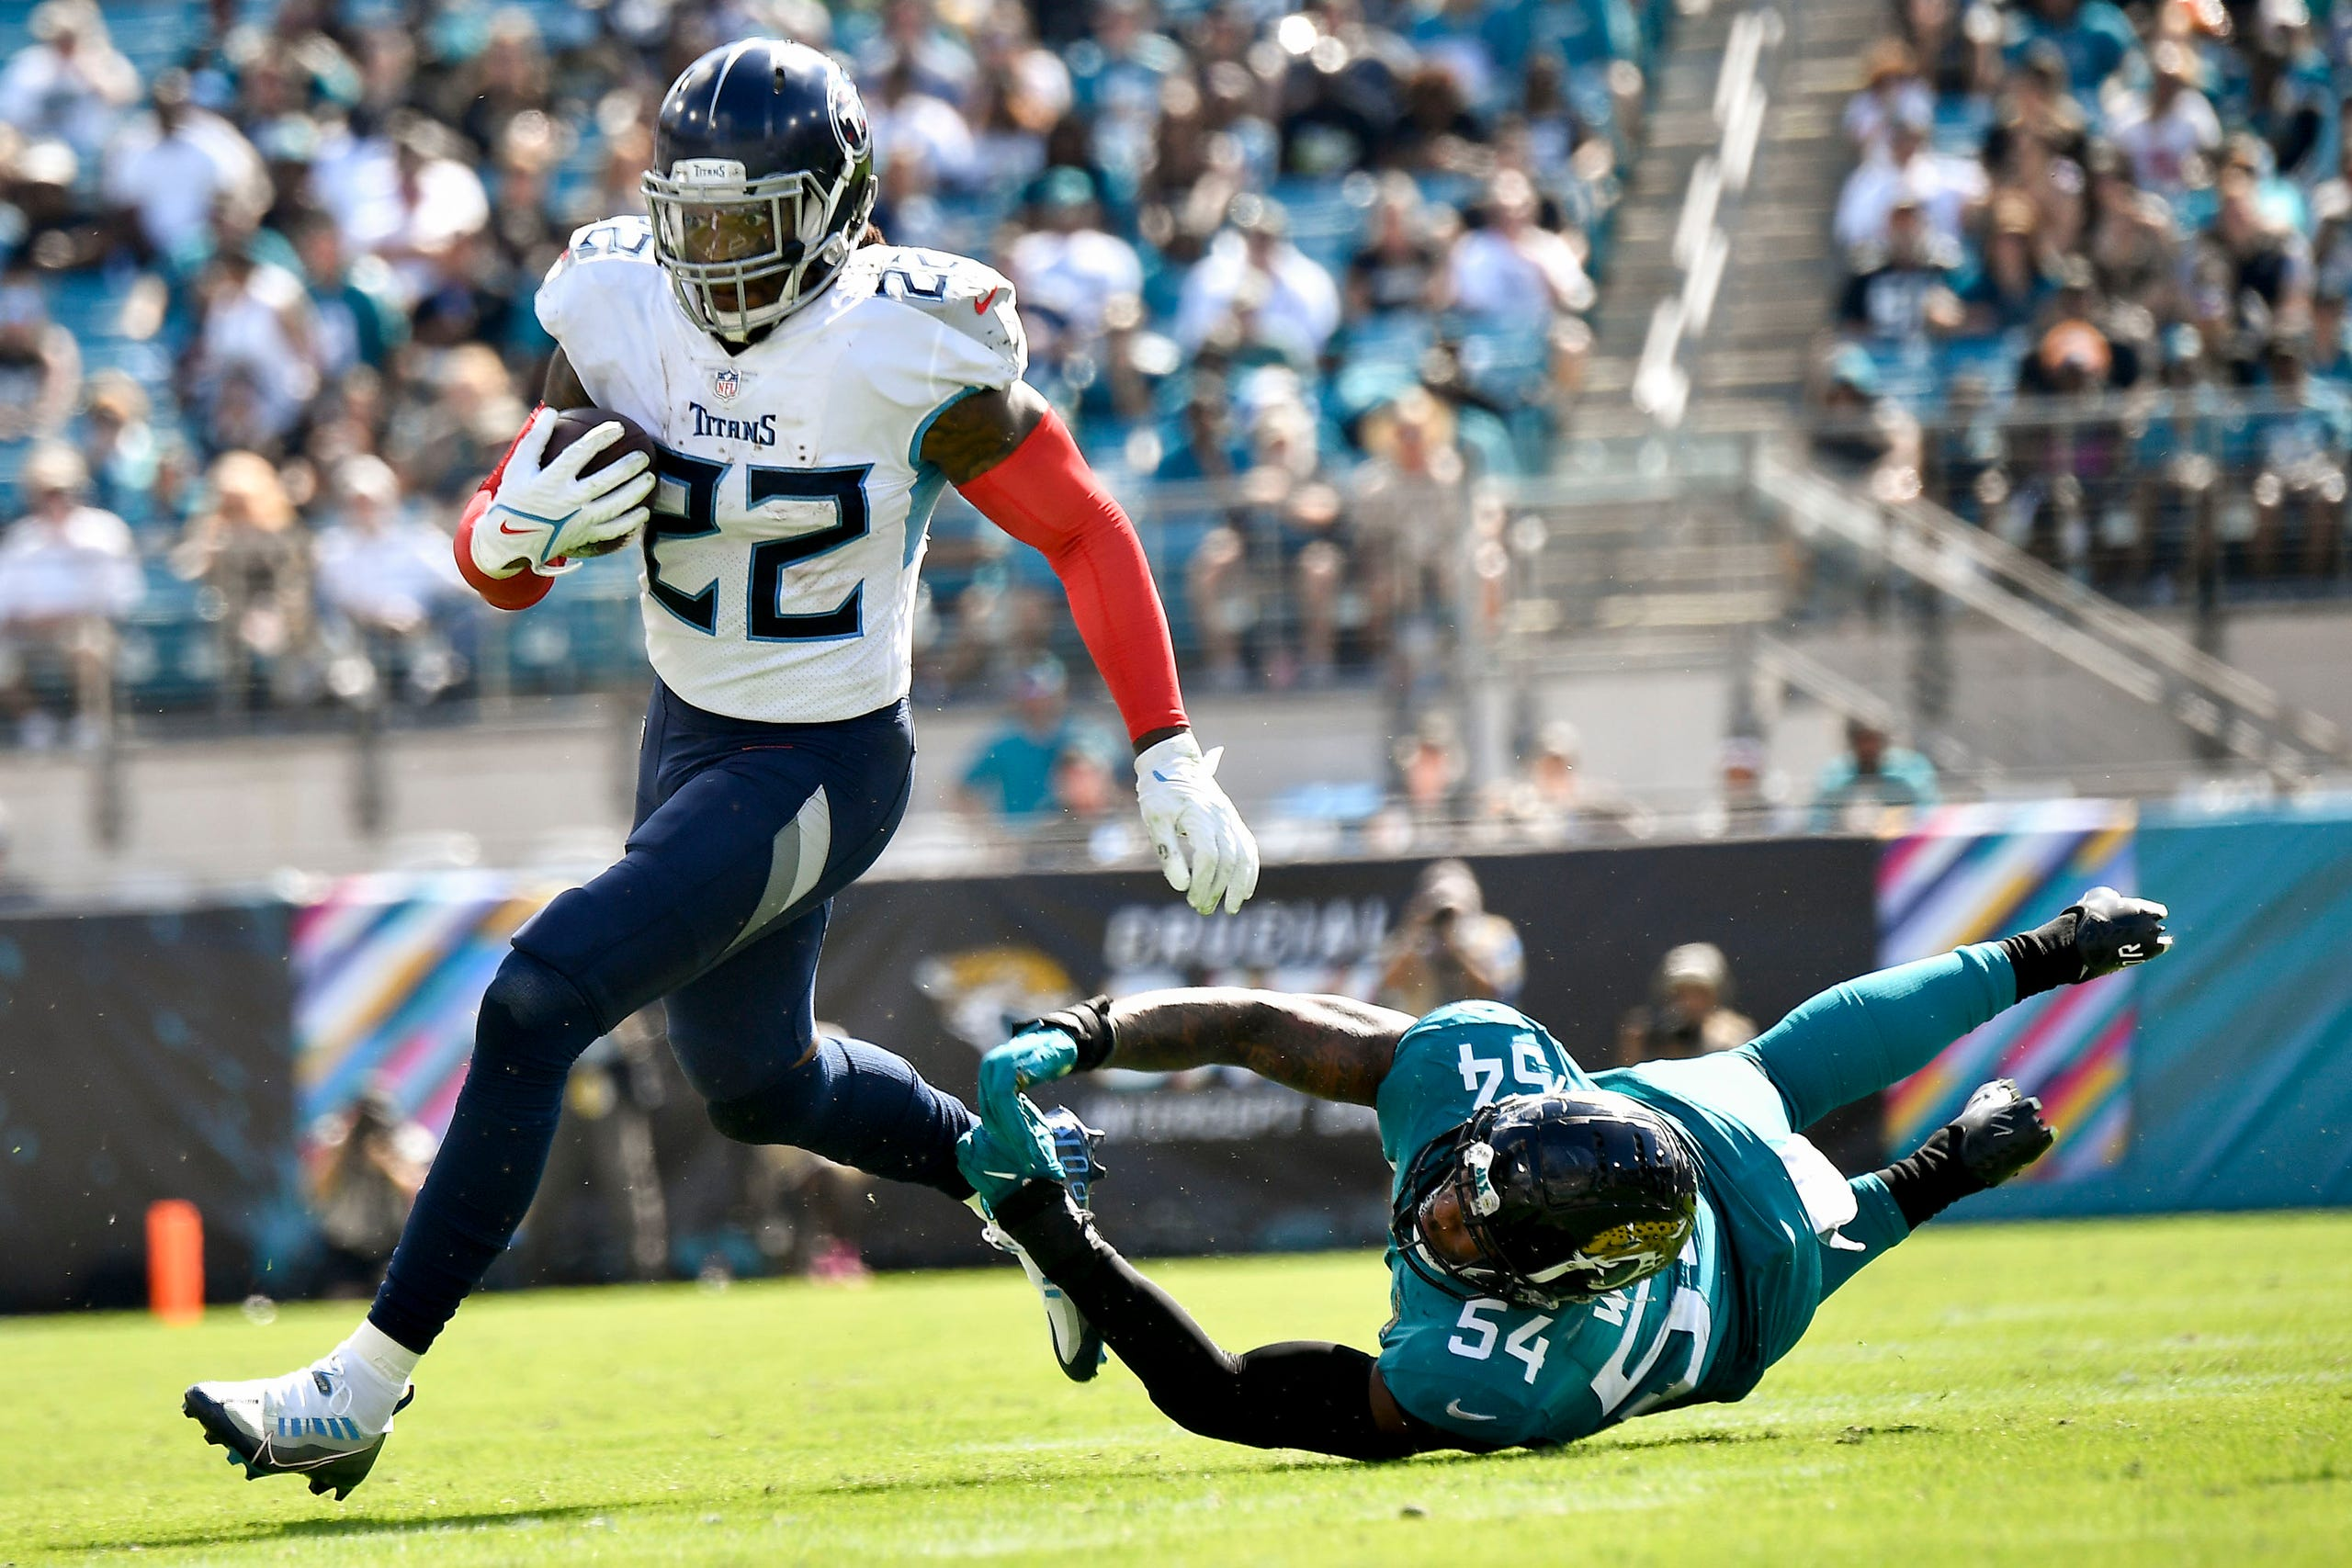 Tennessee Titans running back Derrick Henry (22) rushes for a first down under pressure from Jacksonville Jaguars middle linebacker Damien Wilson (54) during the third quarter of the game at TIAA Bank Field Sunday, Oct. 10, 2021 in Jacksonville, Fla.